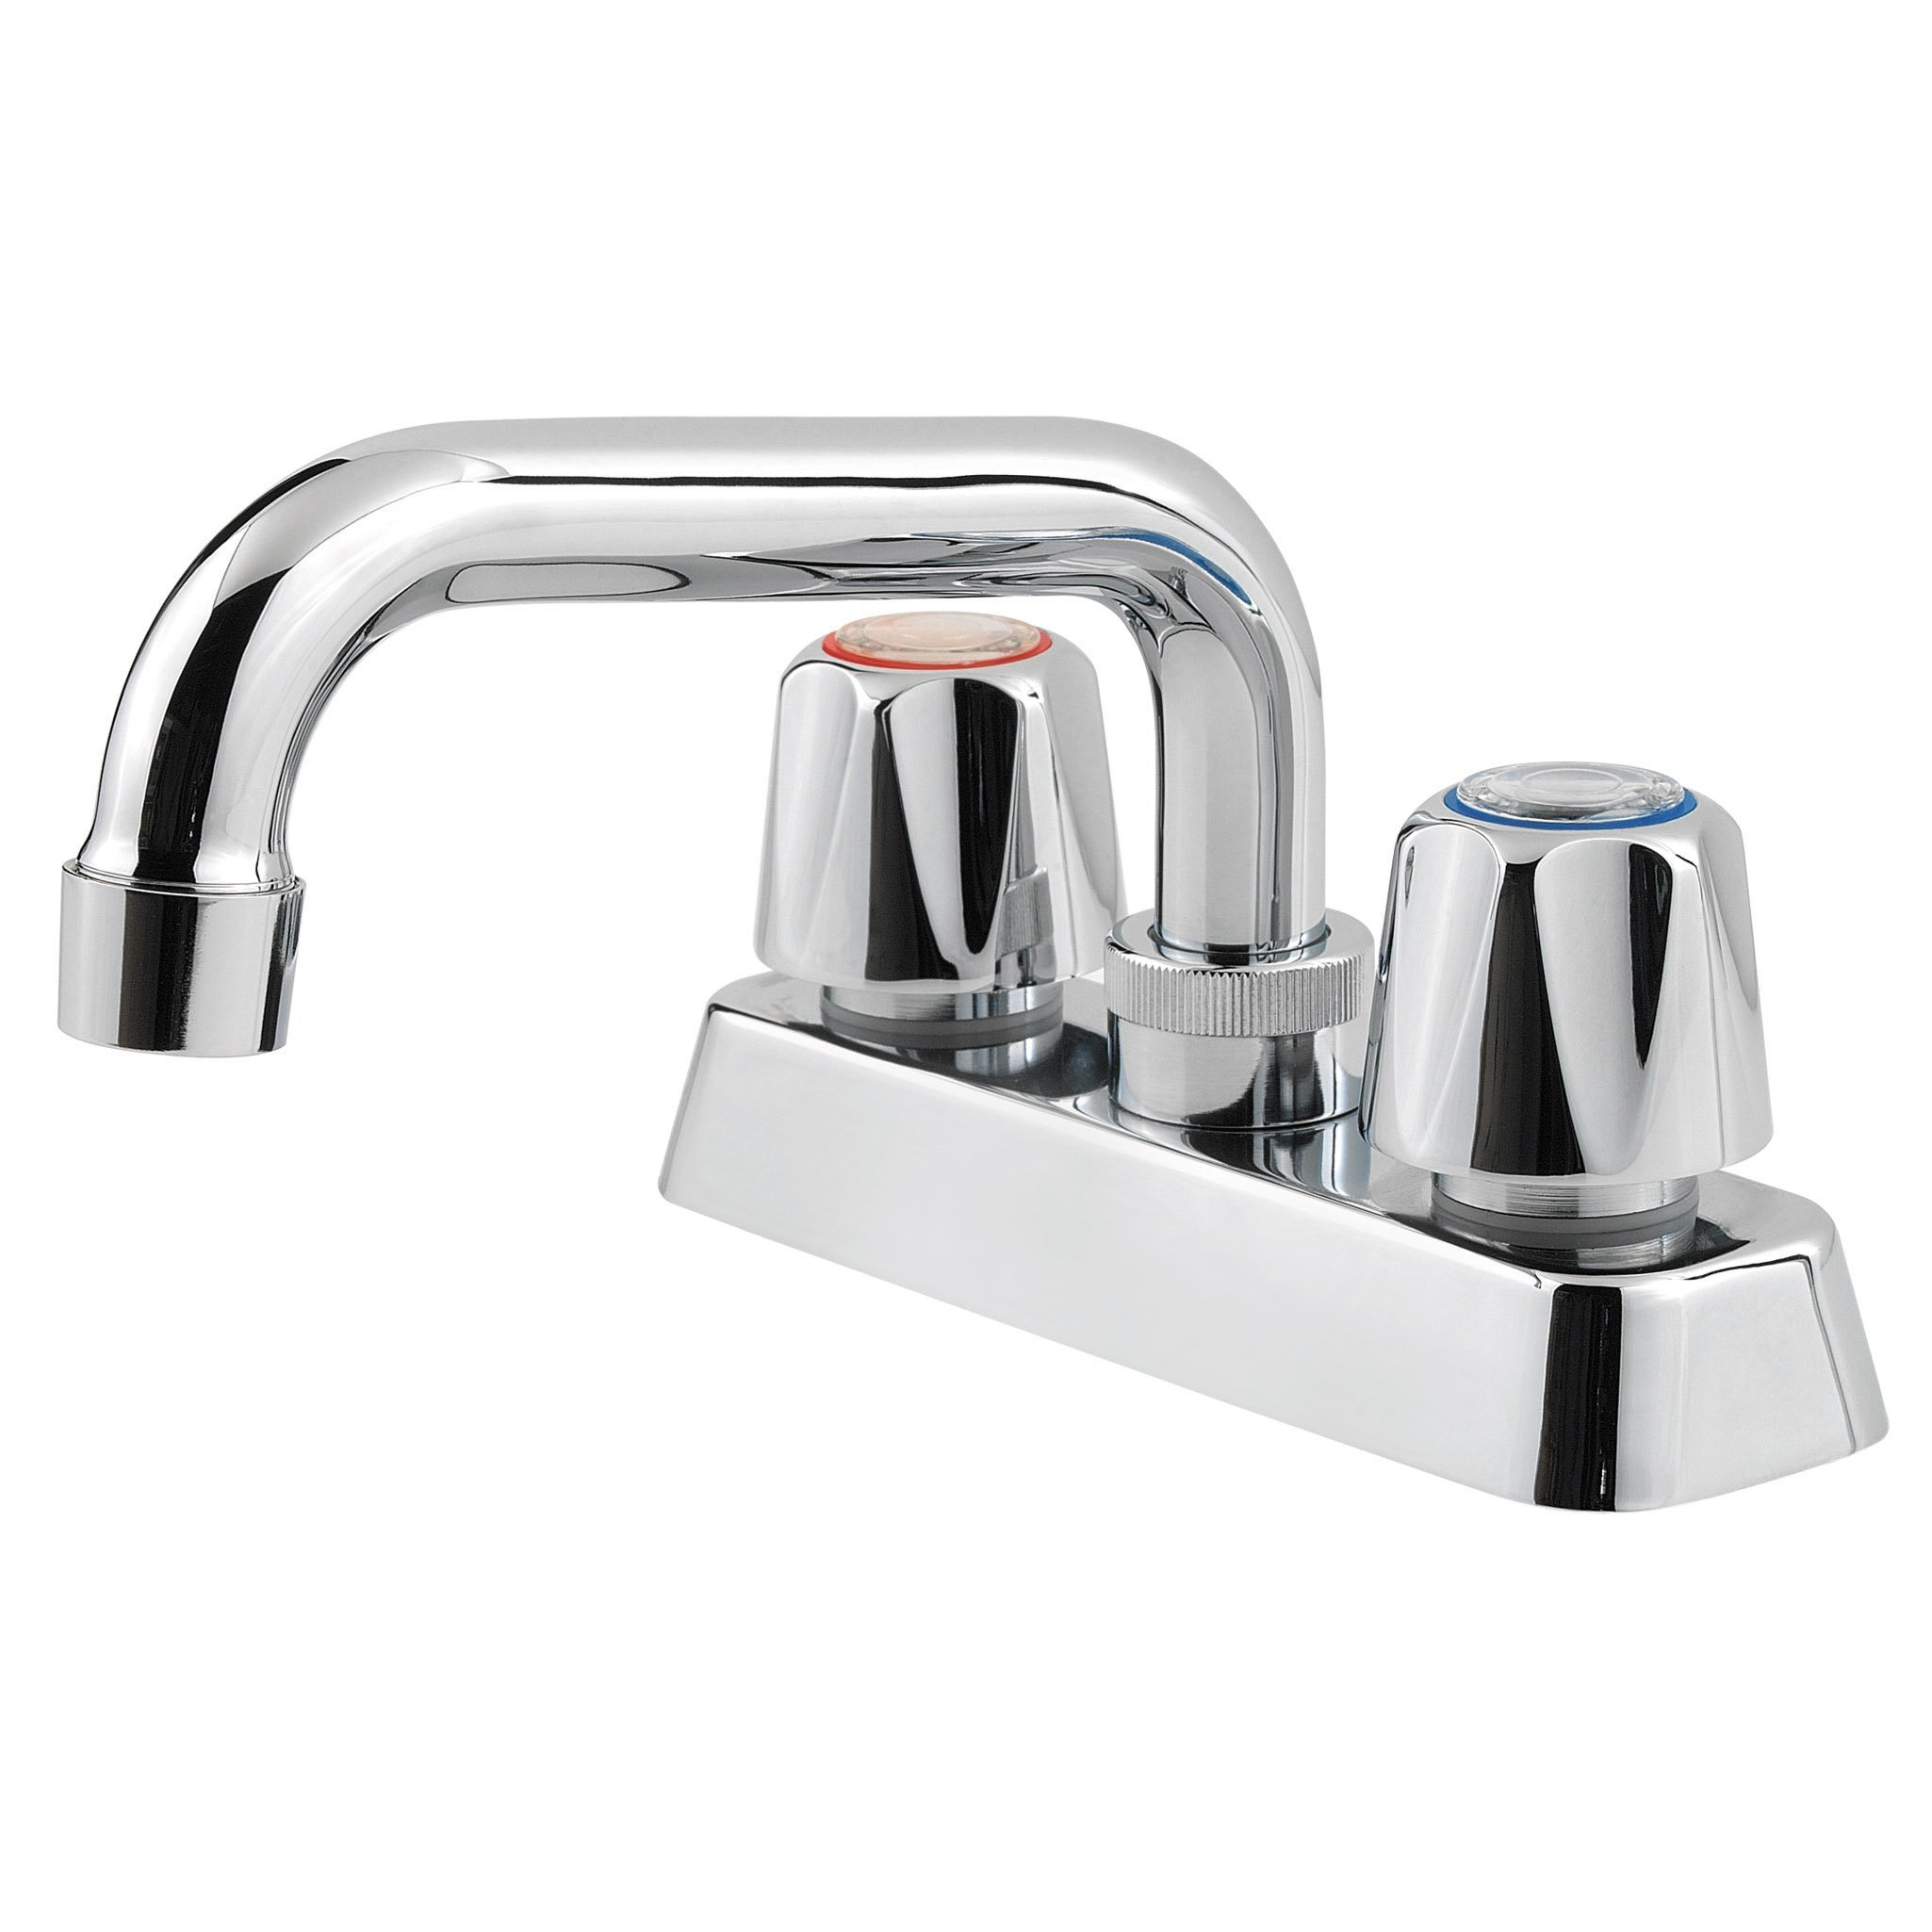 Pfister Pfirst Series 2-Handle Laundry Faucet, Polished Chrome by Pfister